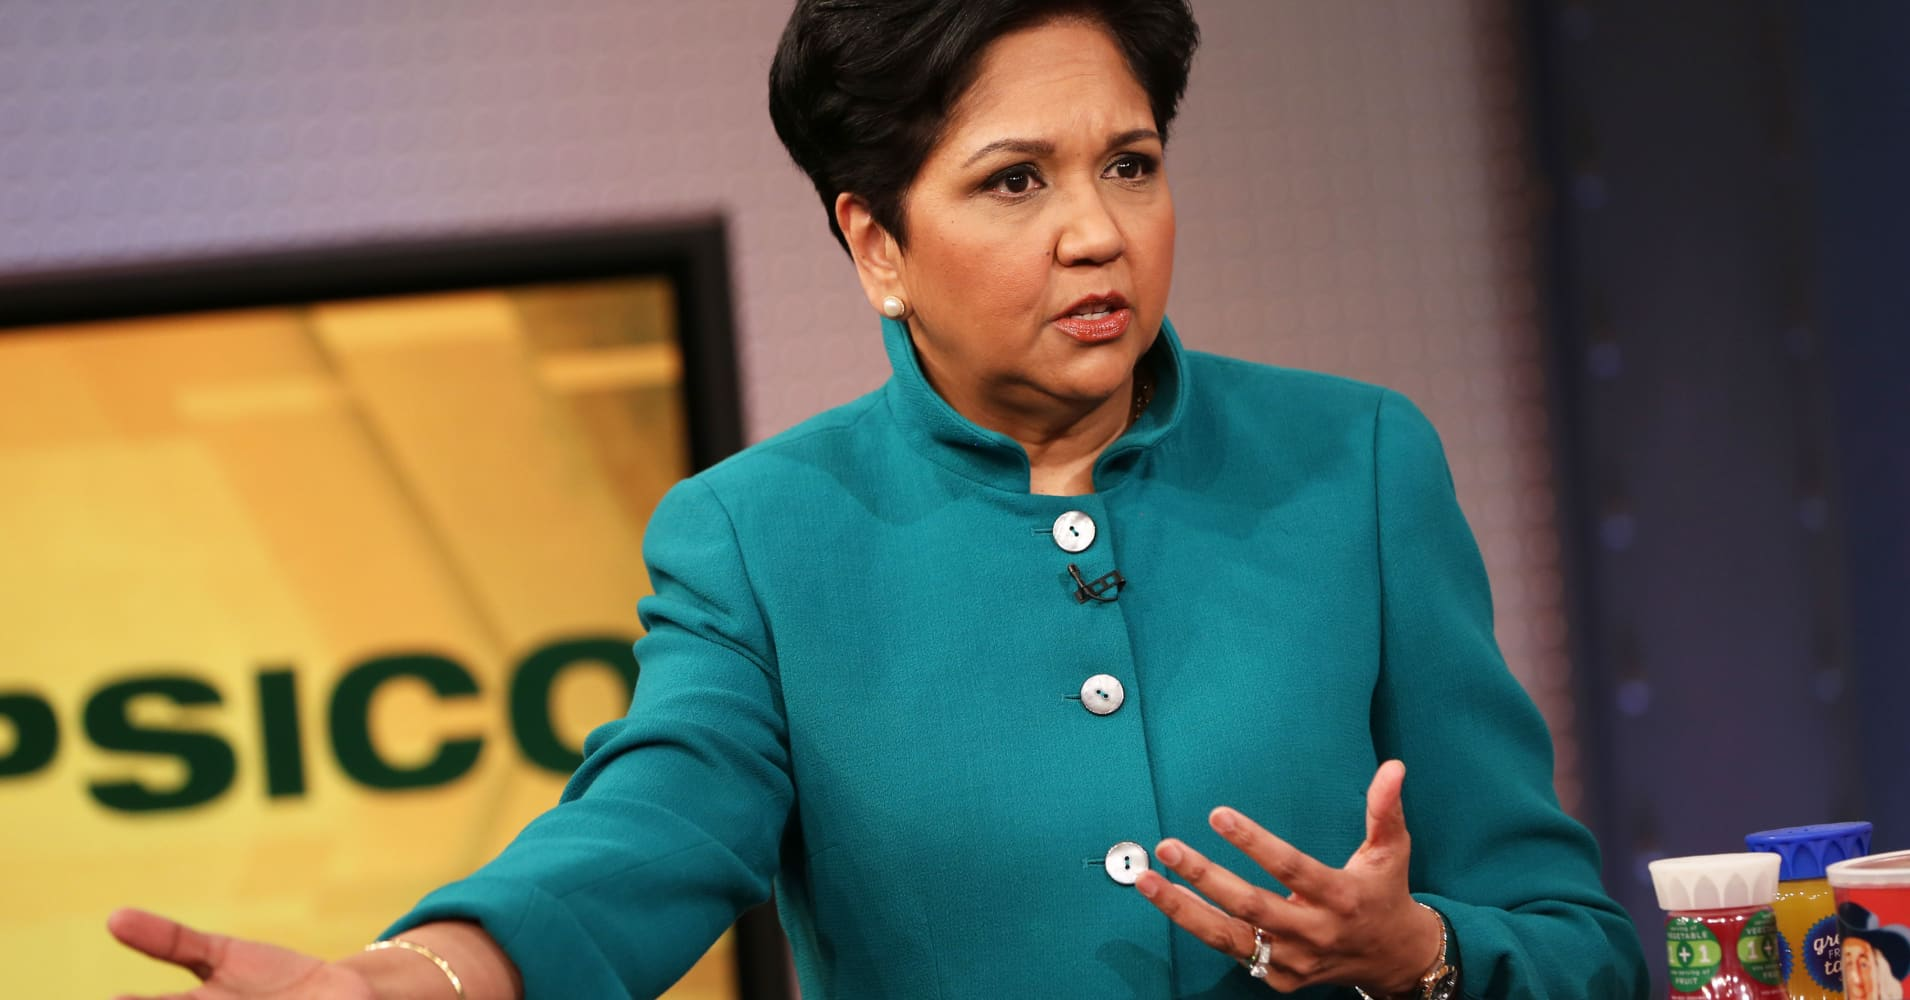 Amazon names former Pepsi CEO Indra Nooyi as new board member